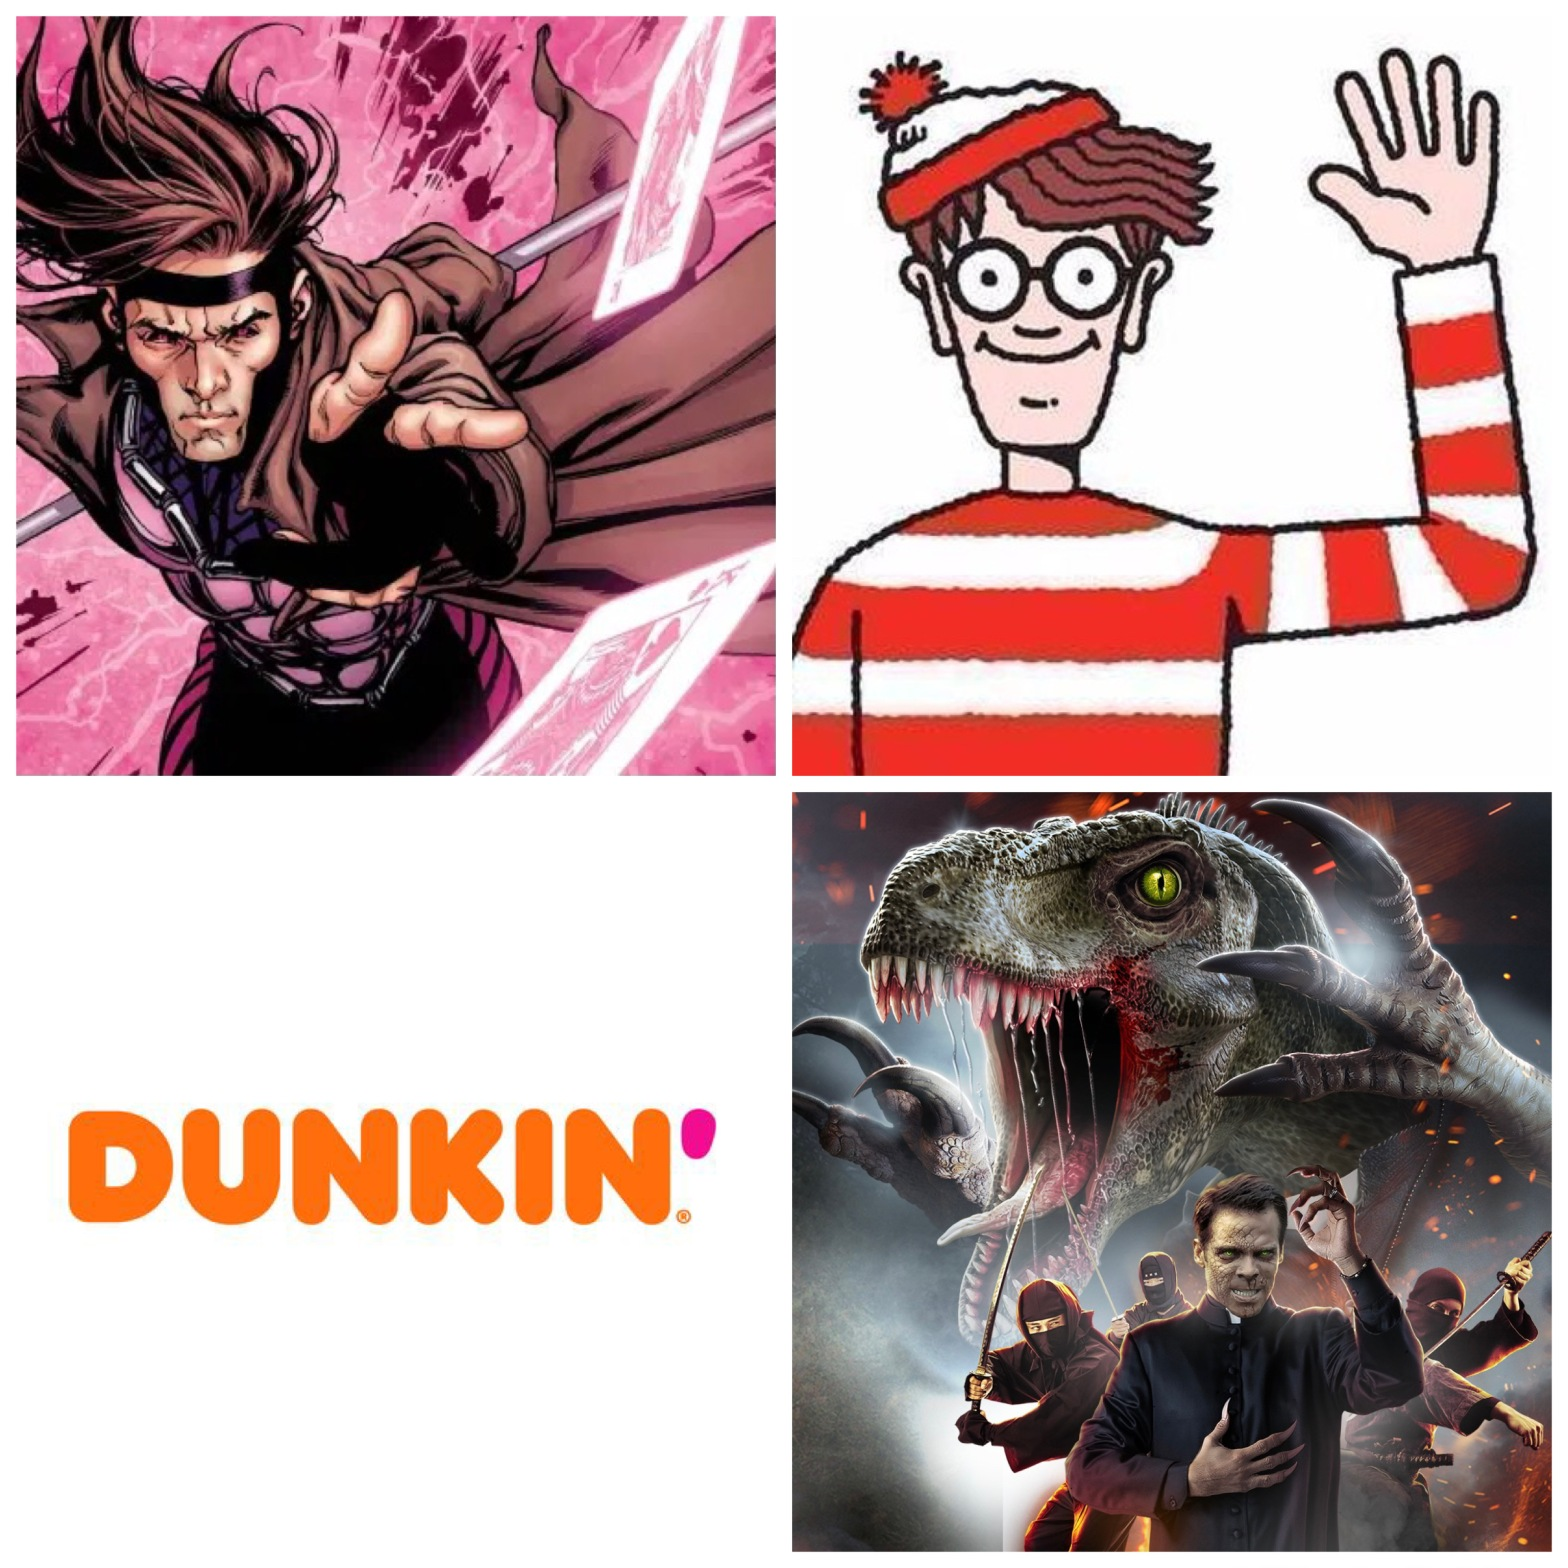 Gambit, Where's Waldo, Dunkin' Donuts, and The VelociPastor.